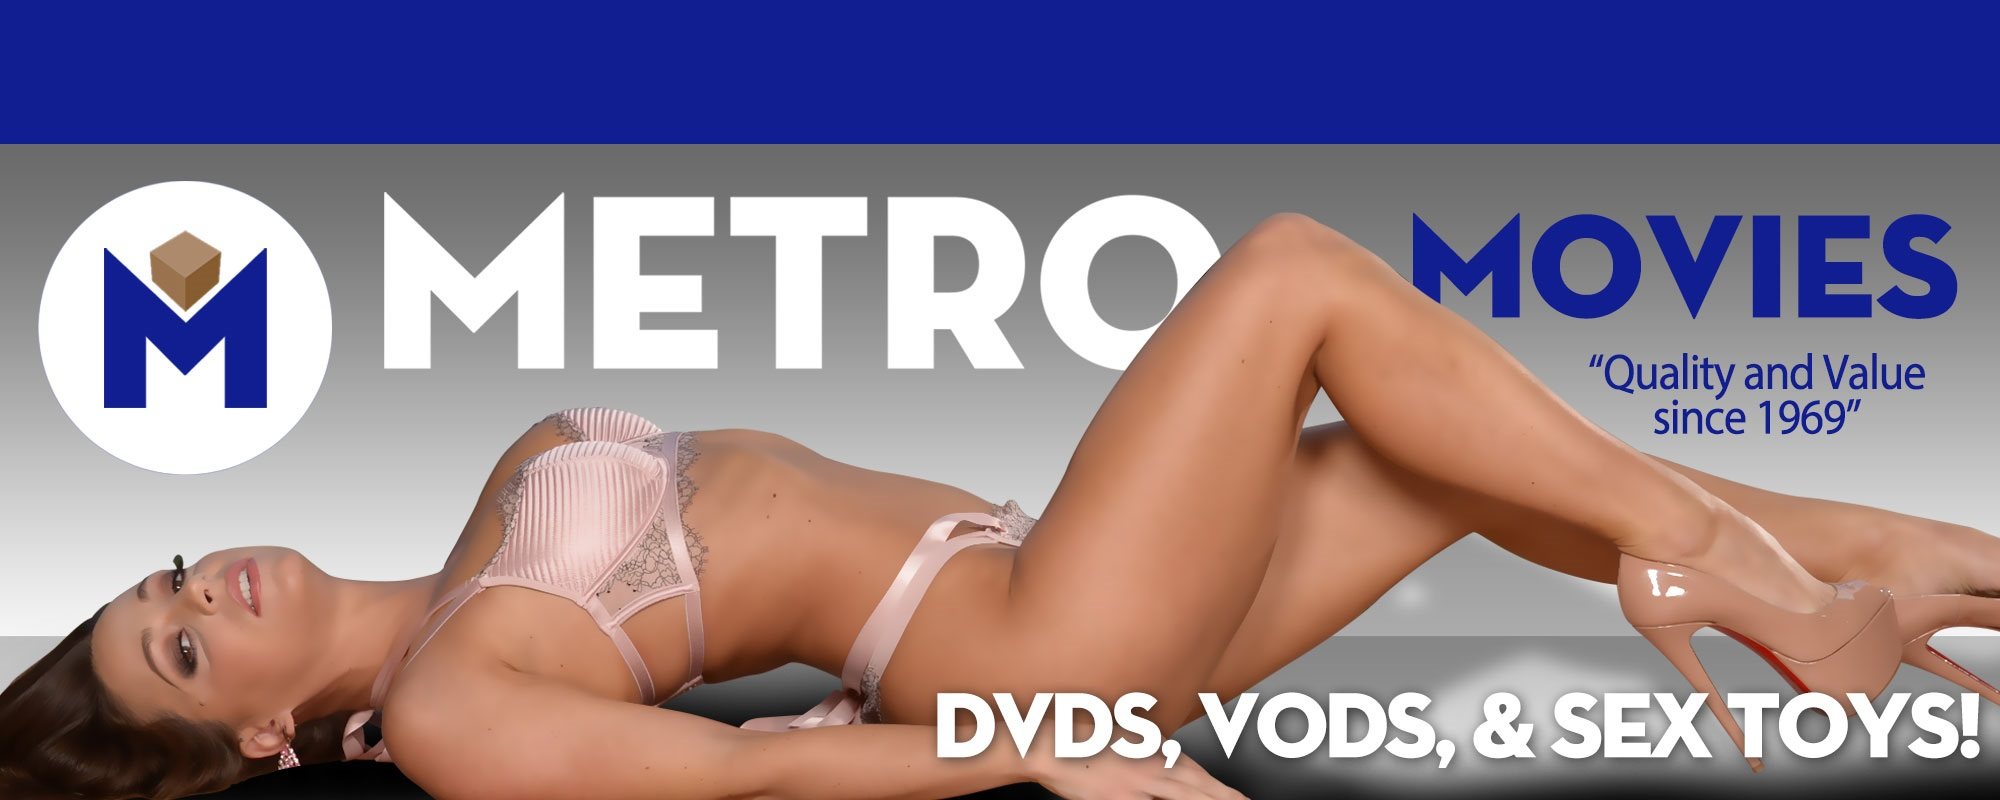 Welcome to the Metro Movies  DVD, sextoy and Video on Demand theatre and store.